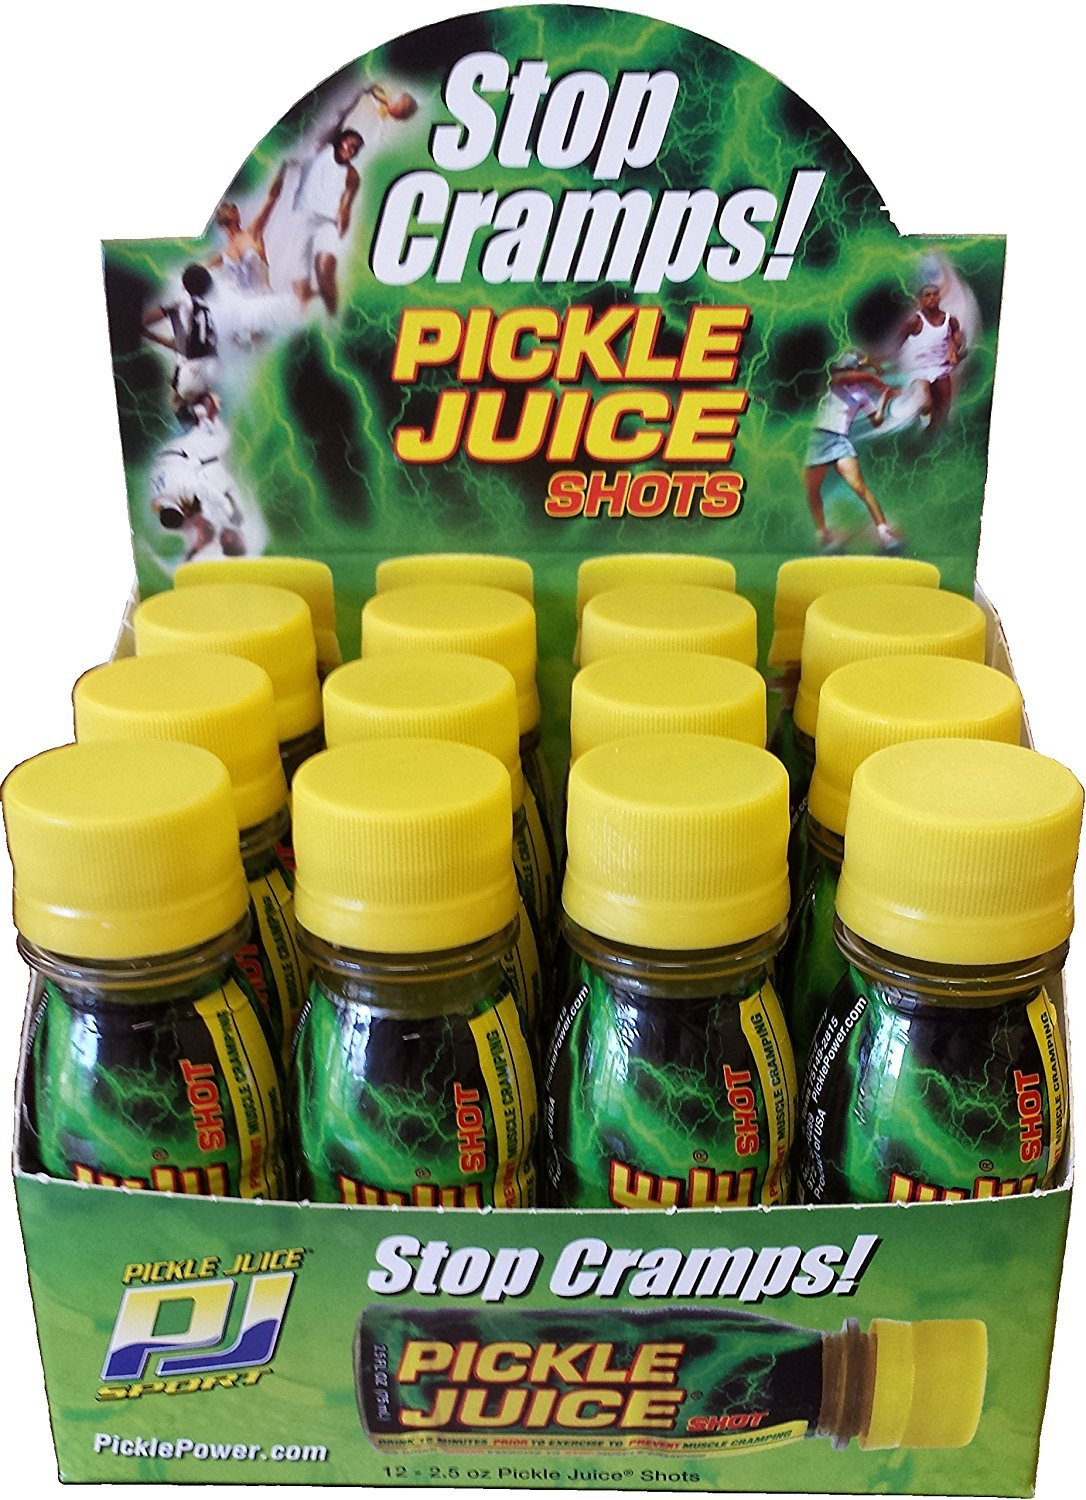 Pickle Juice Extra Strength Shots, 2.5 oz, 12 pack - 2 Boxes by Pickle Juice.